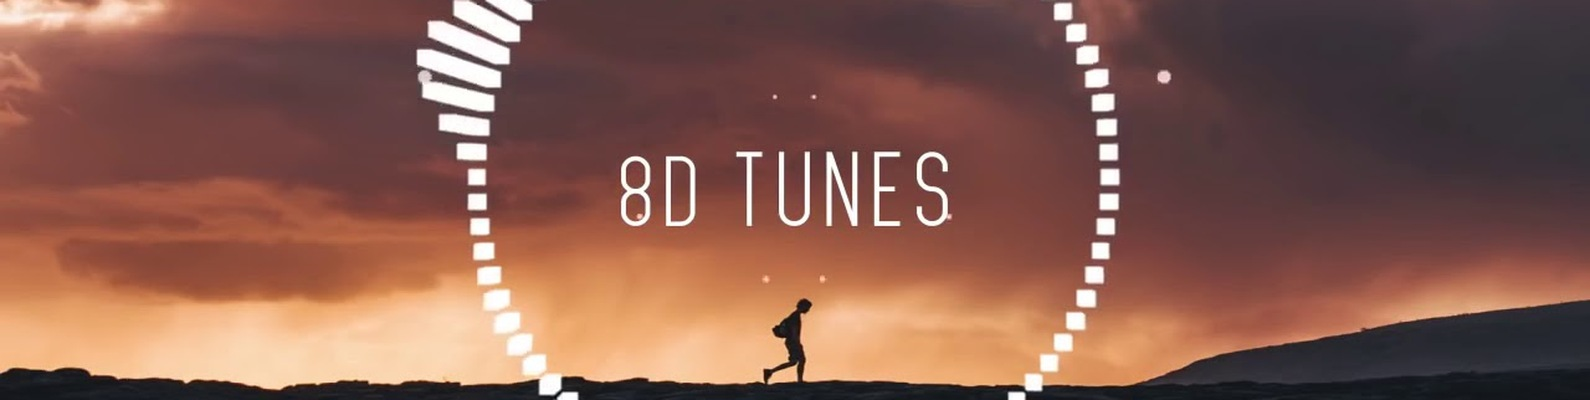 8d tune download